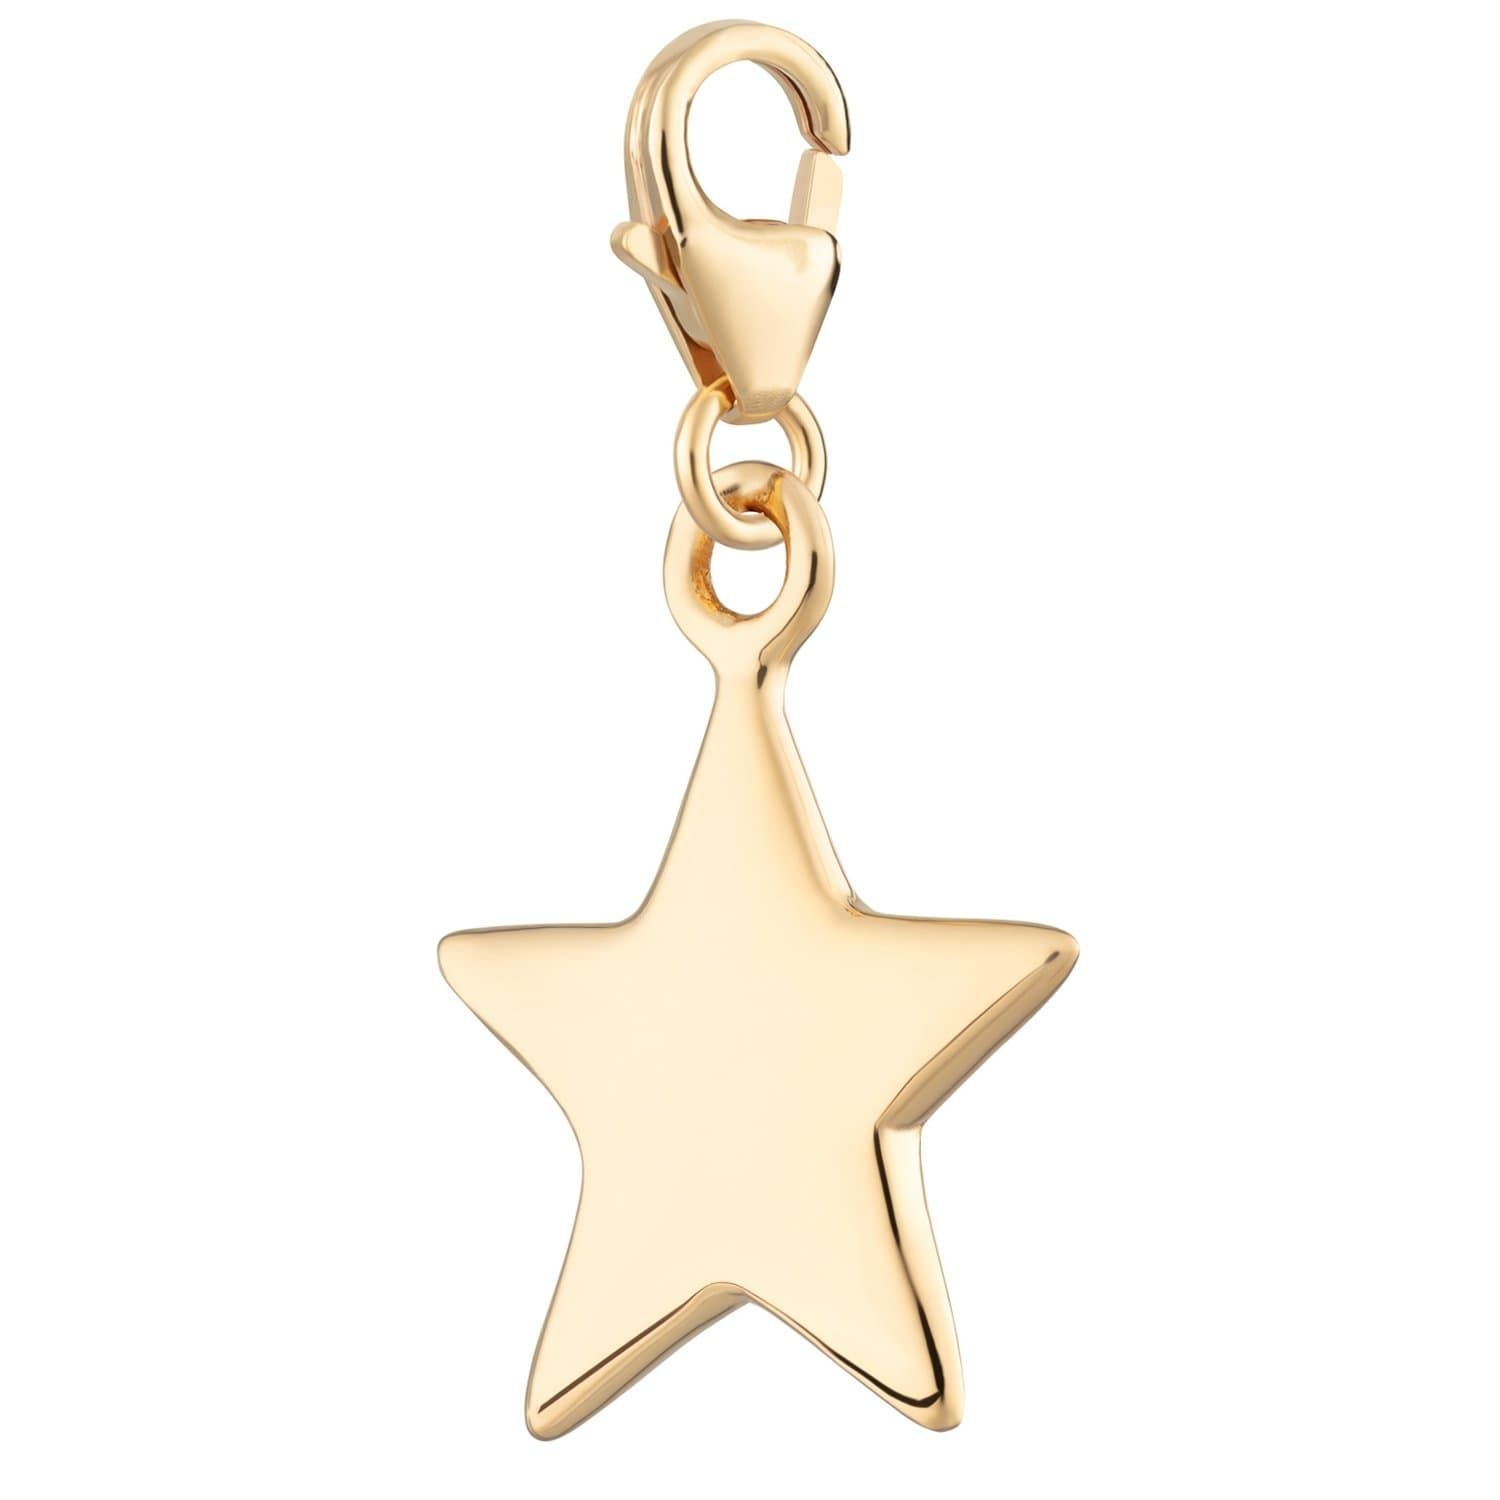 Gold Plated Solid Star Charm - Lily Charmed